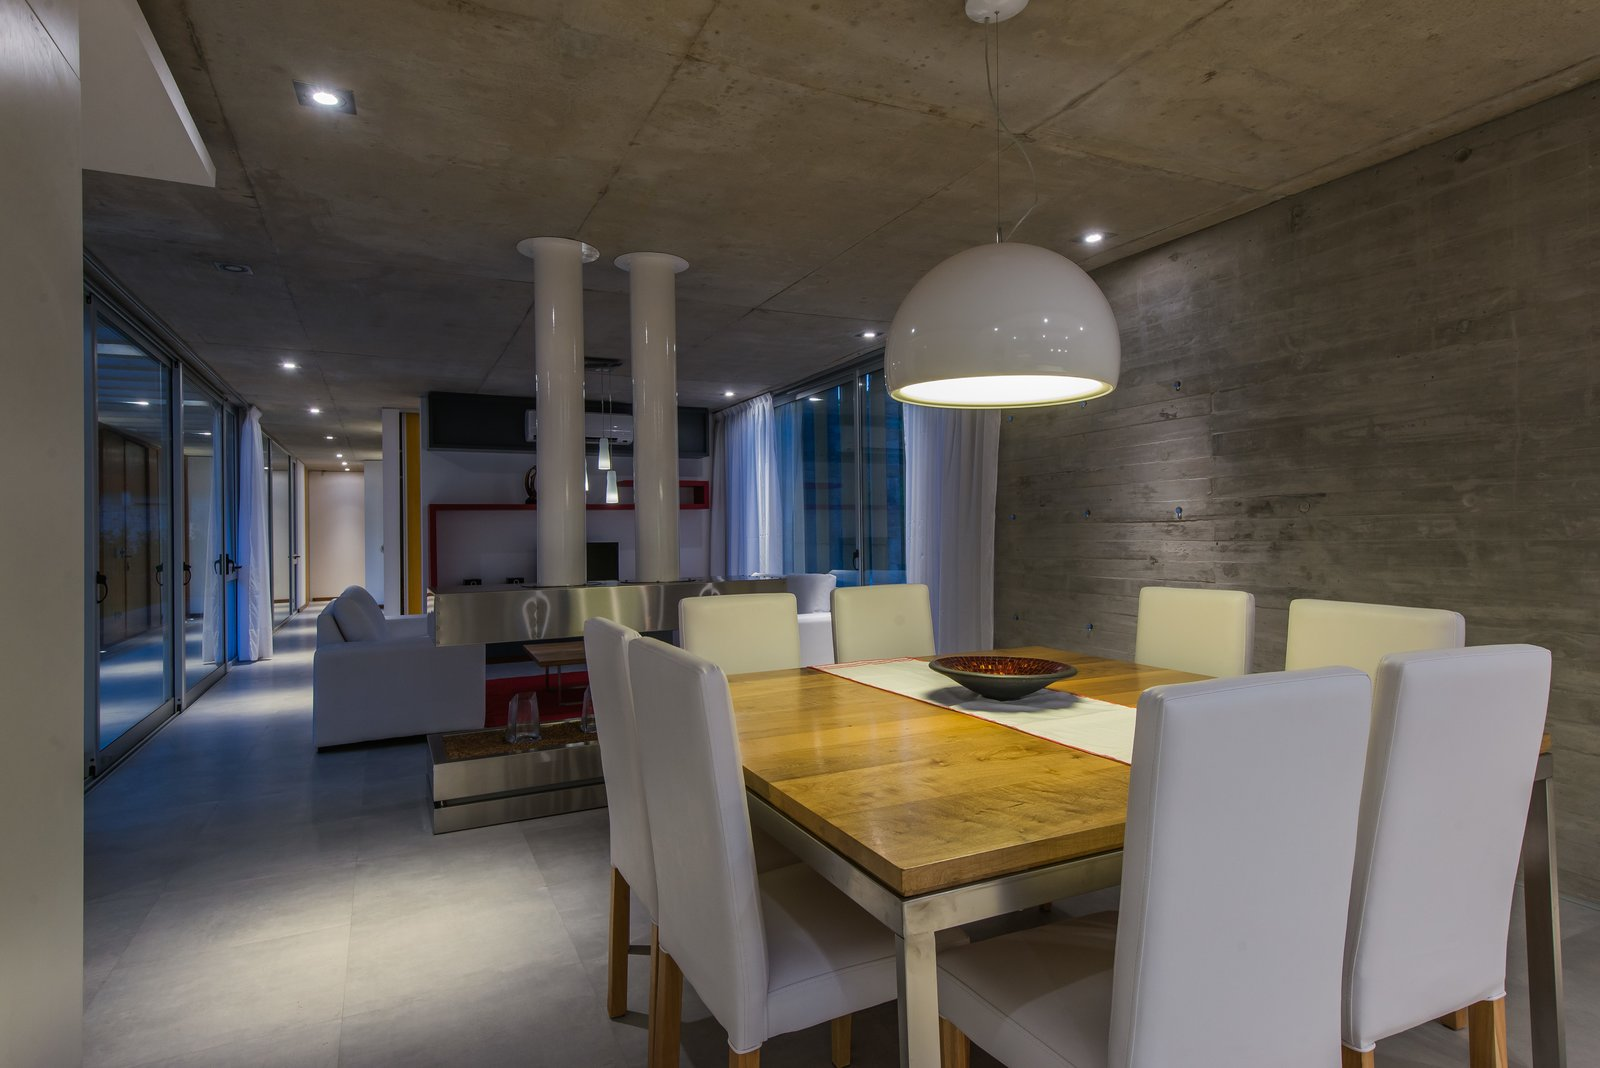 Tagged: Dining Room, Chair, Ceiling Lighting, Table Lighting, Porcelain Tile Floor, Table, and Standard Layout Fireplace.  Casa Batin by Estudio Galera